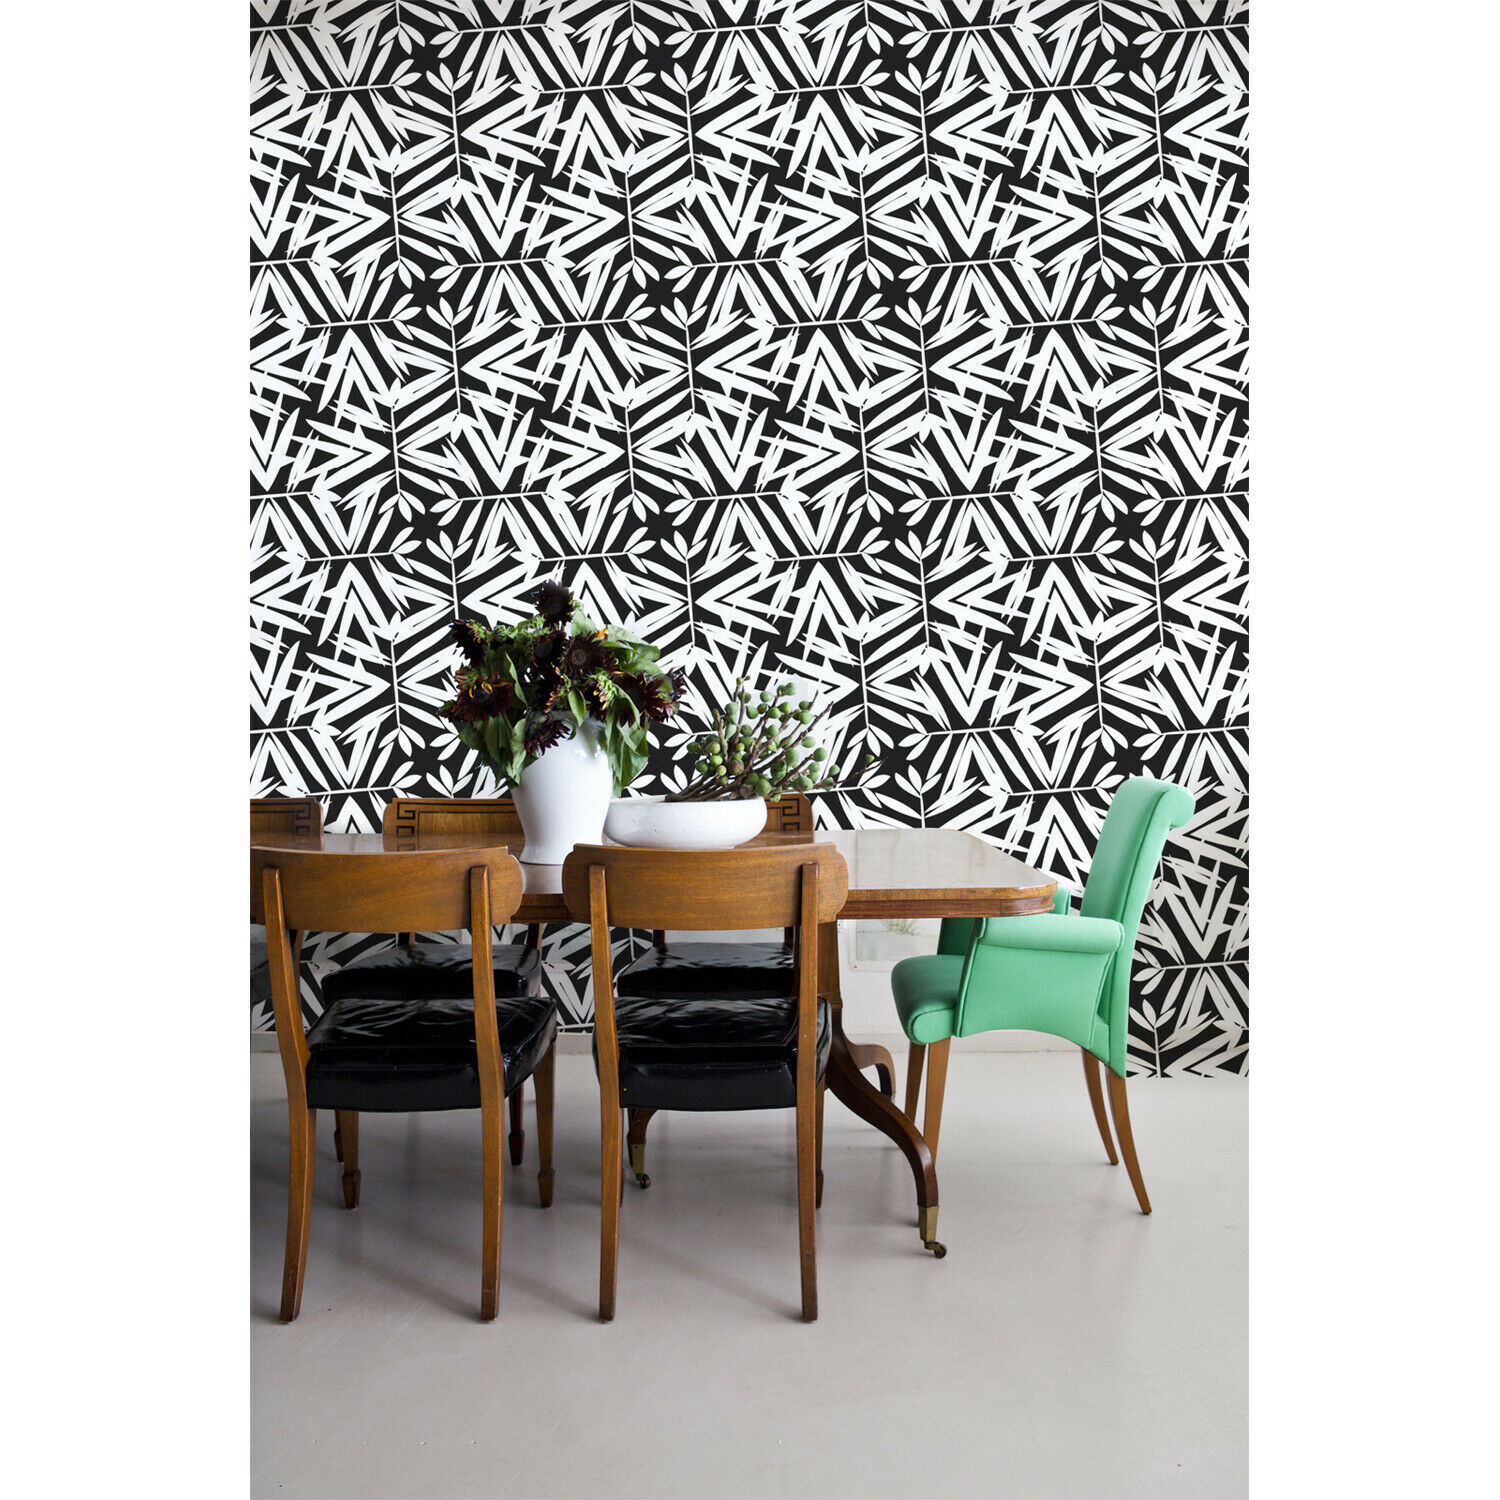 Pattern Home decor Simple wall mural Geometric Non-Woven wallpaper traditional